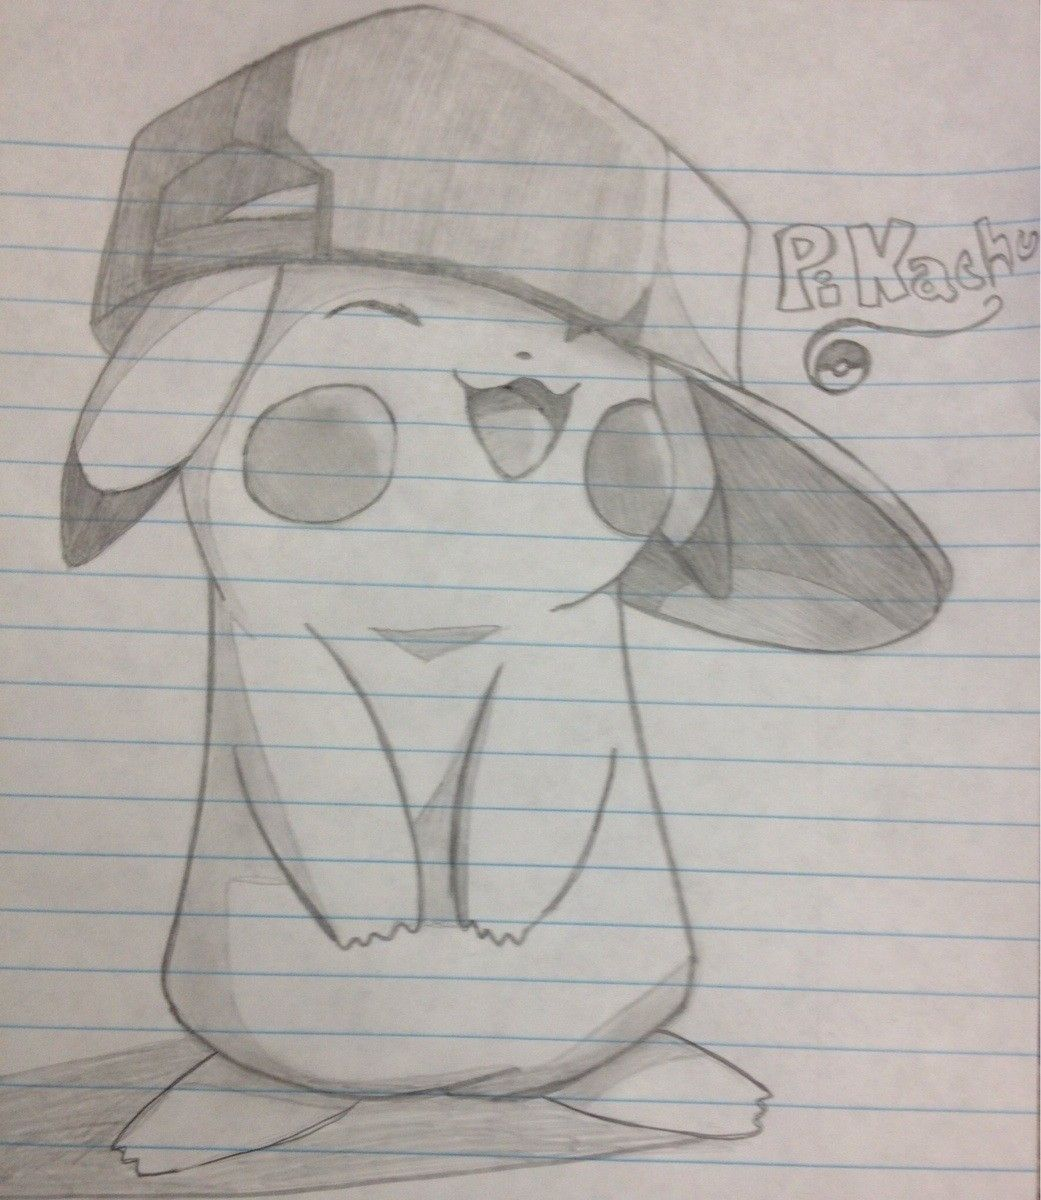 Cute pikachu to draw when bored drawing ideas for Thing to draw